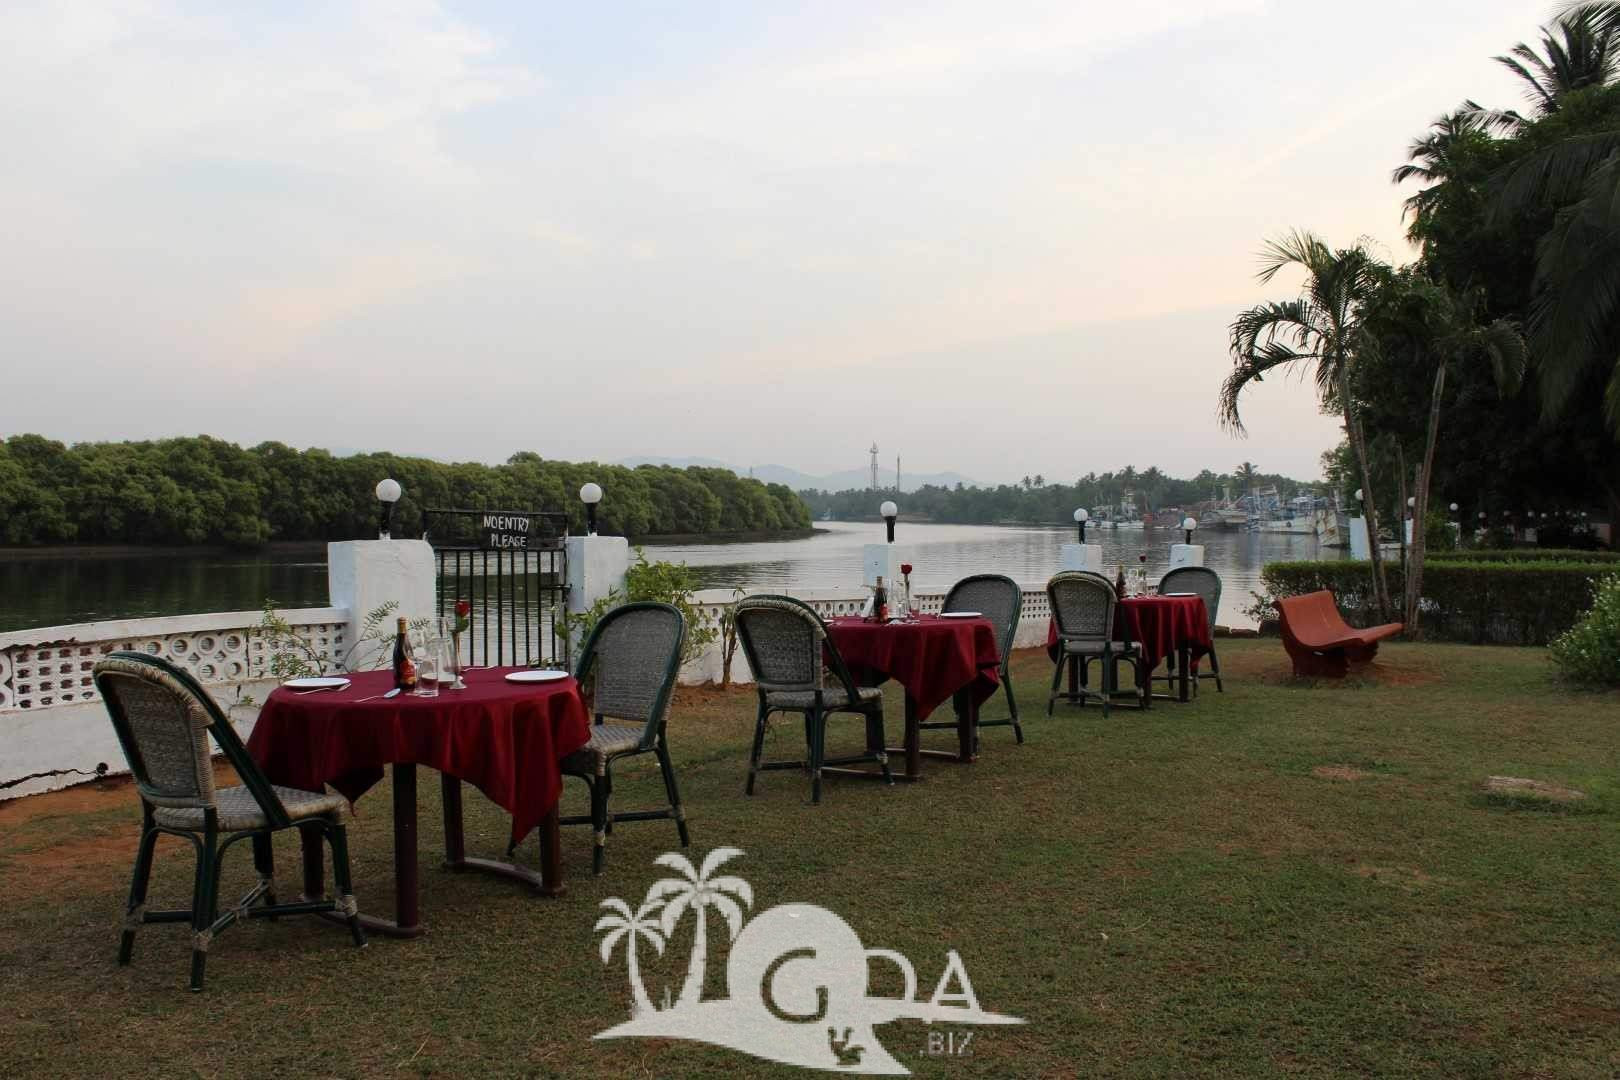 The Byke Old Anchor – Goa